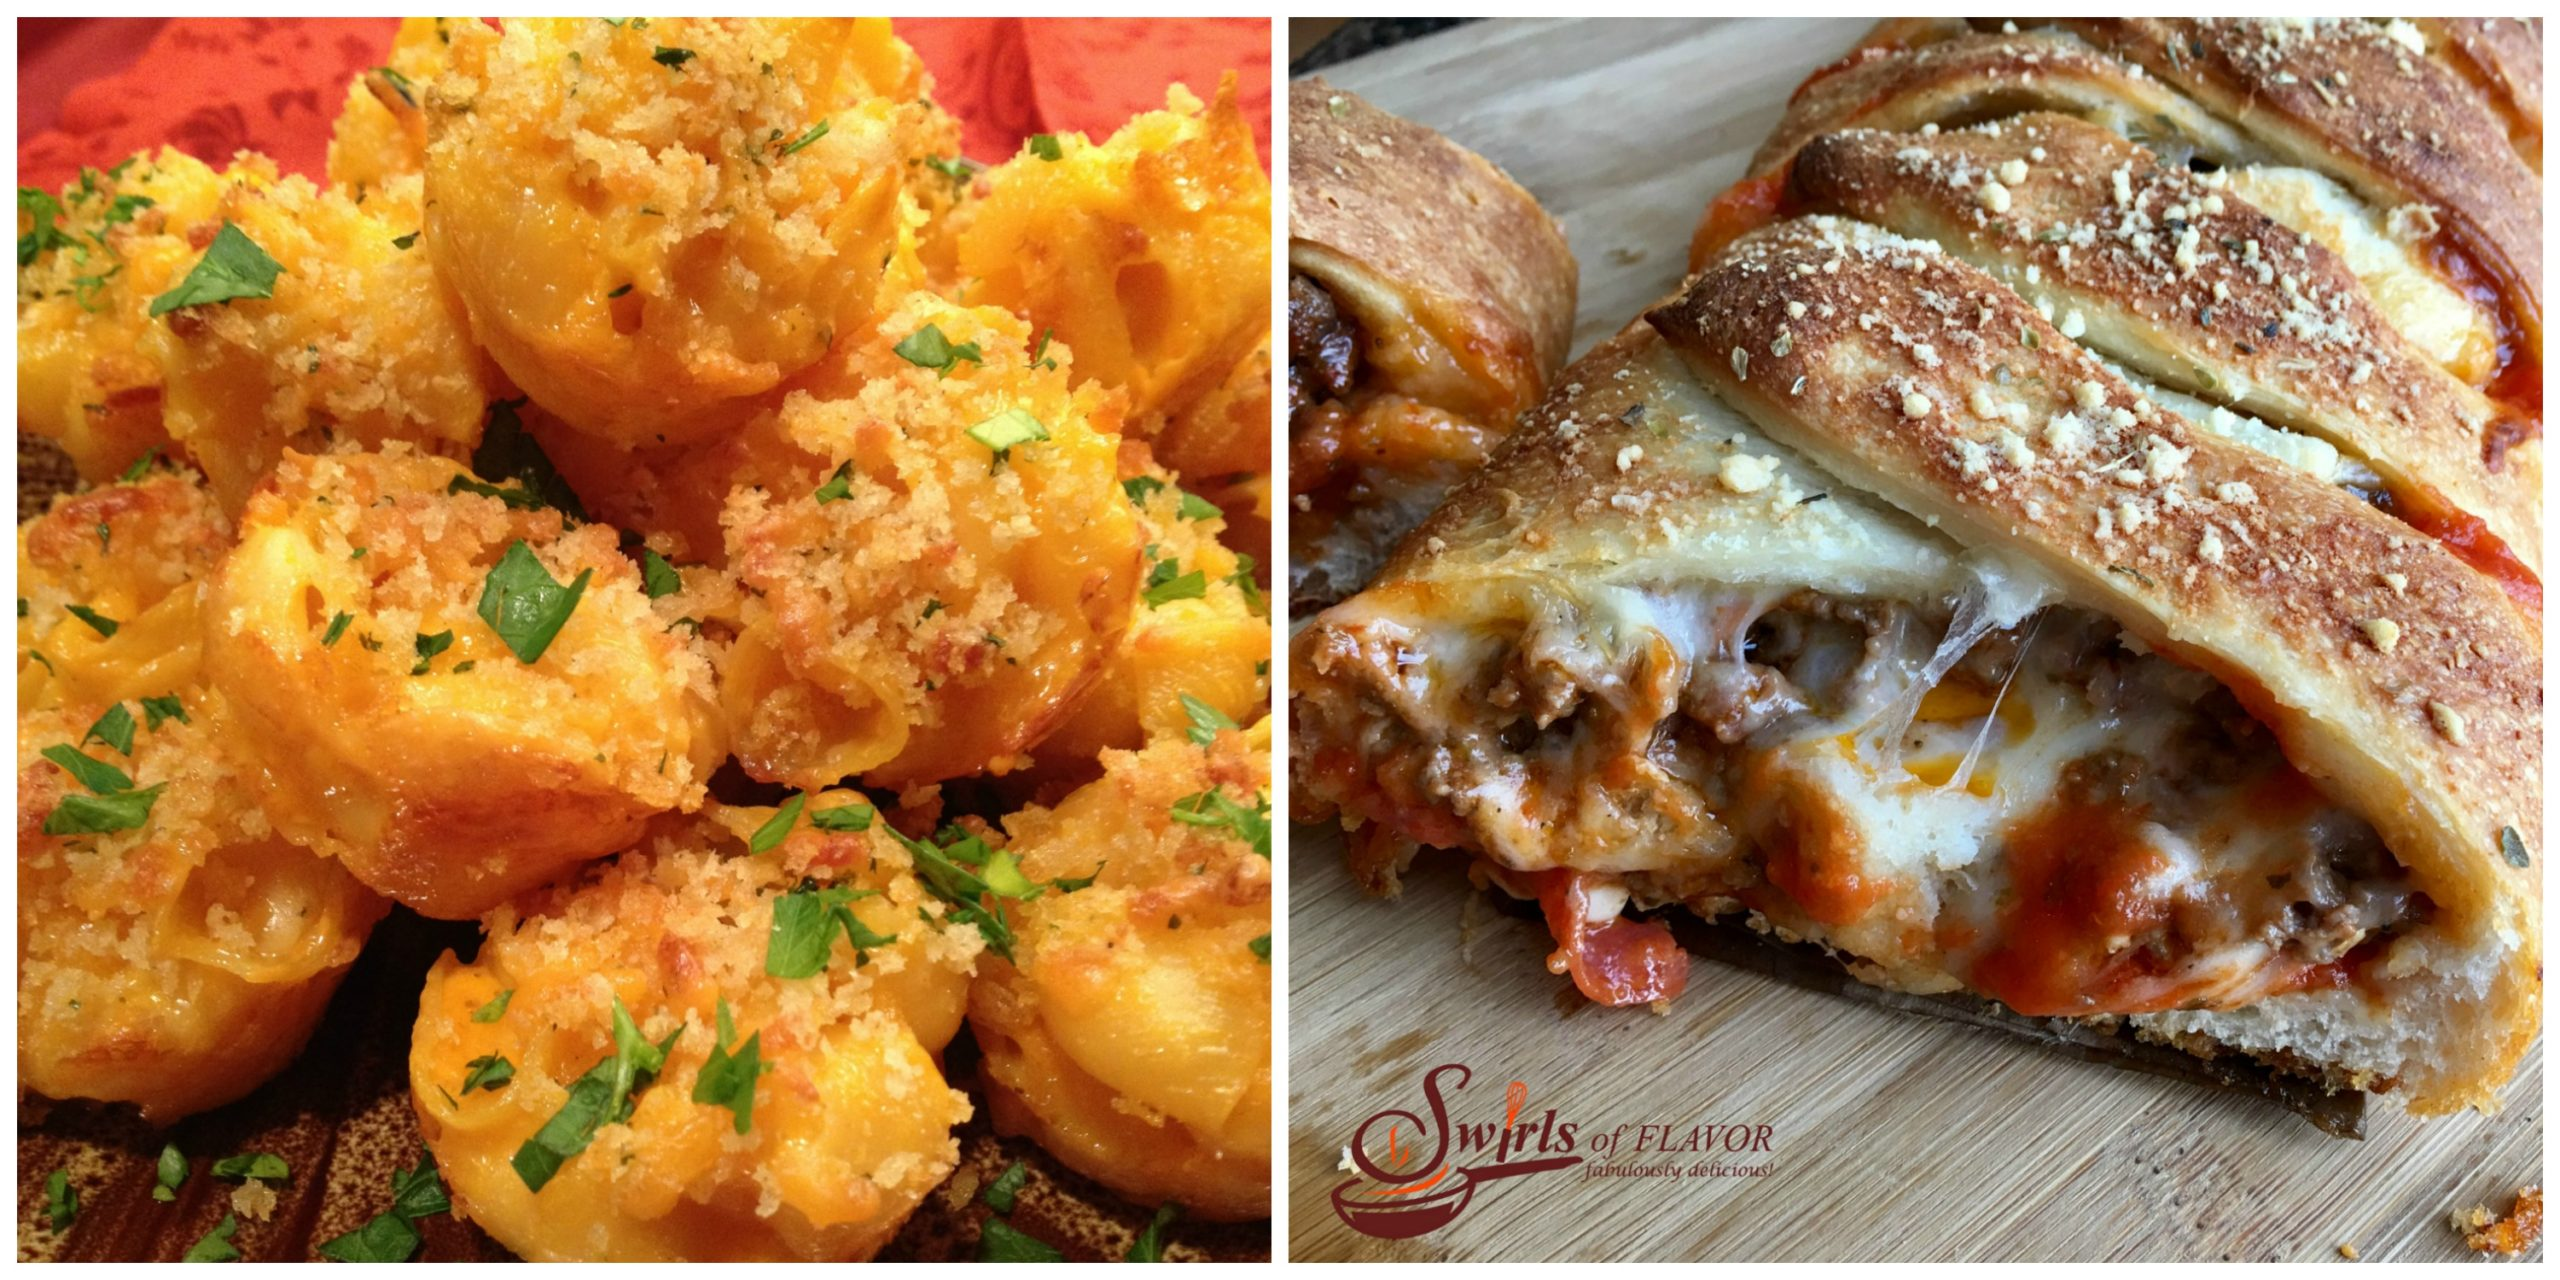 Mac and Cheese Bites and Pizza Bread